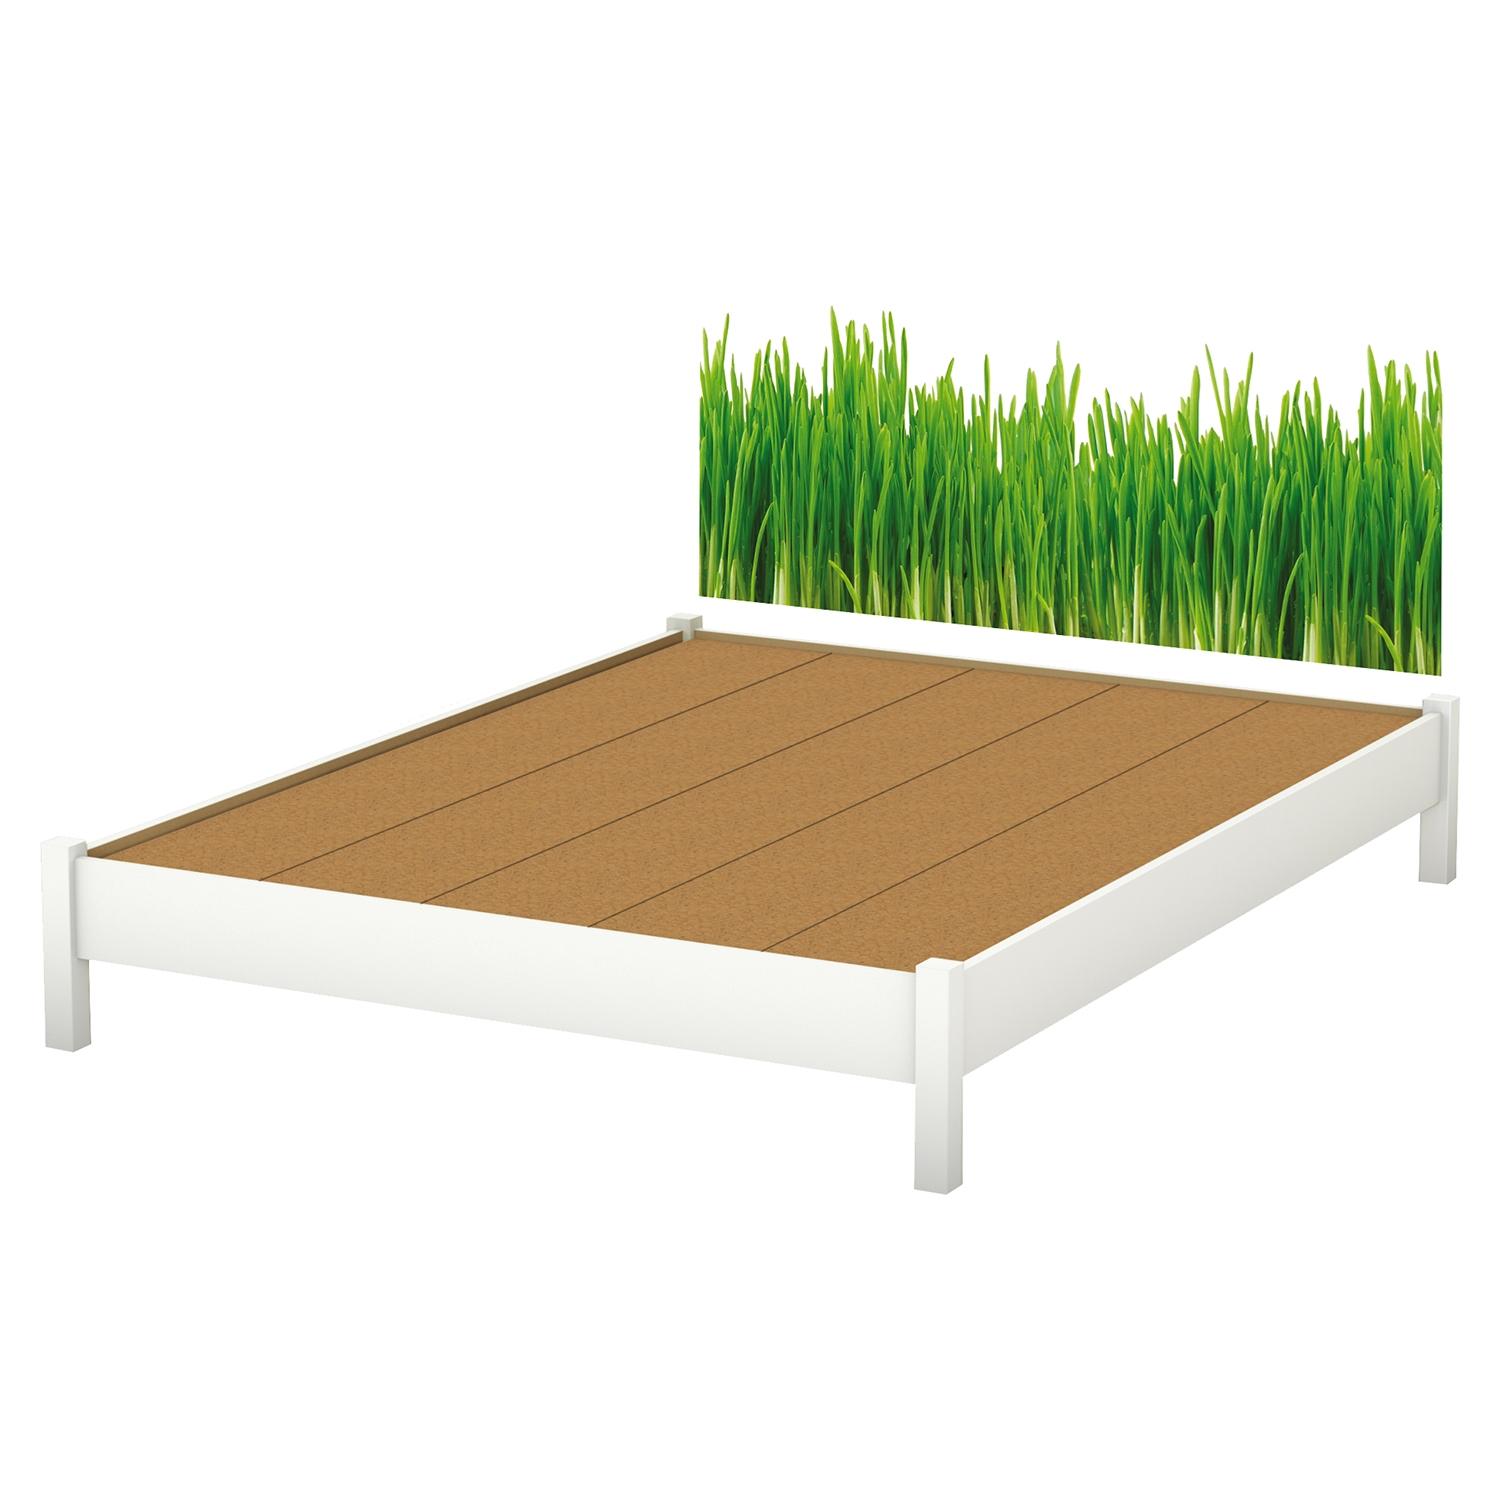 Step One Queen Platform Bed with Legs - Grass Decal, Pure White